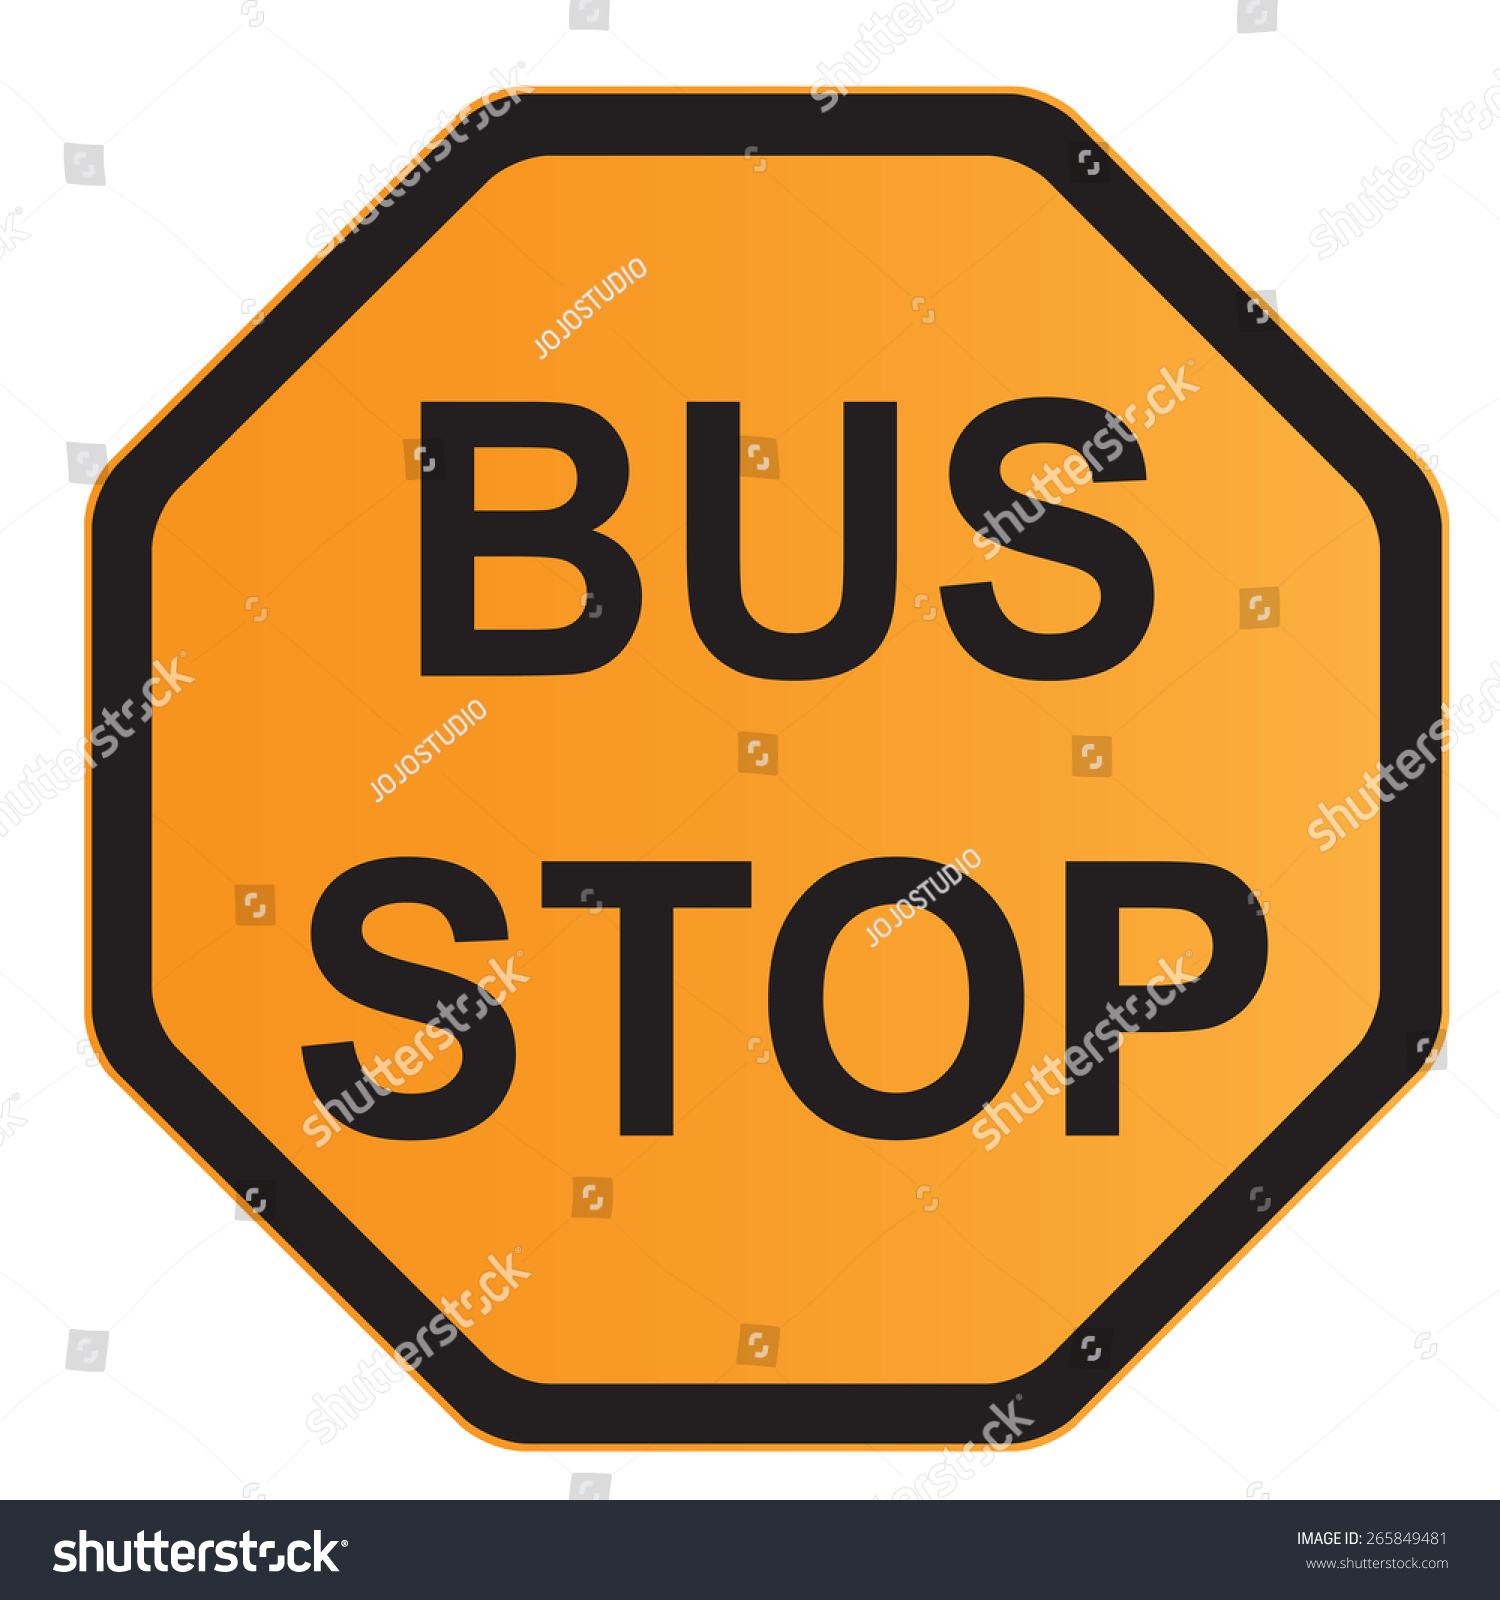 List of Synonyms and Antonyms of the Word: stop sine